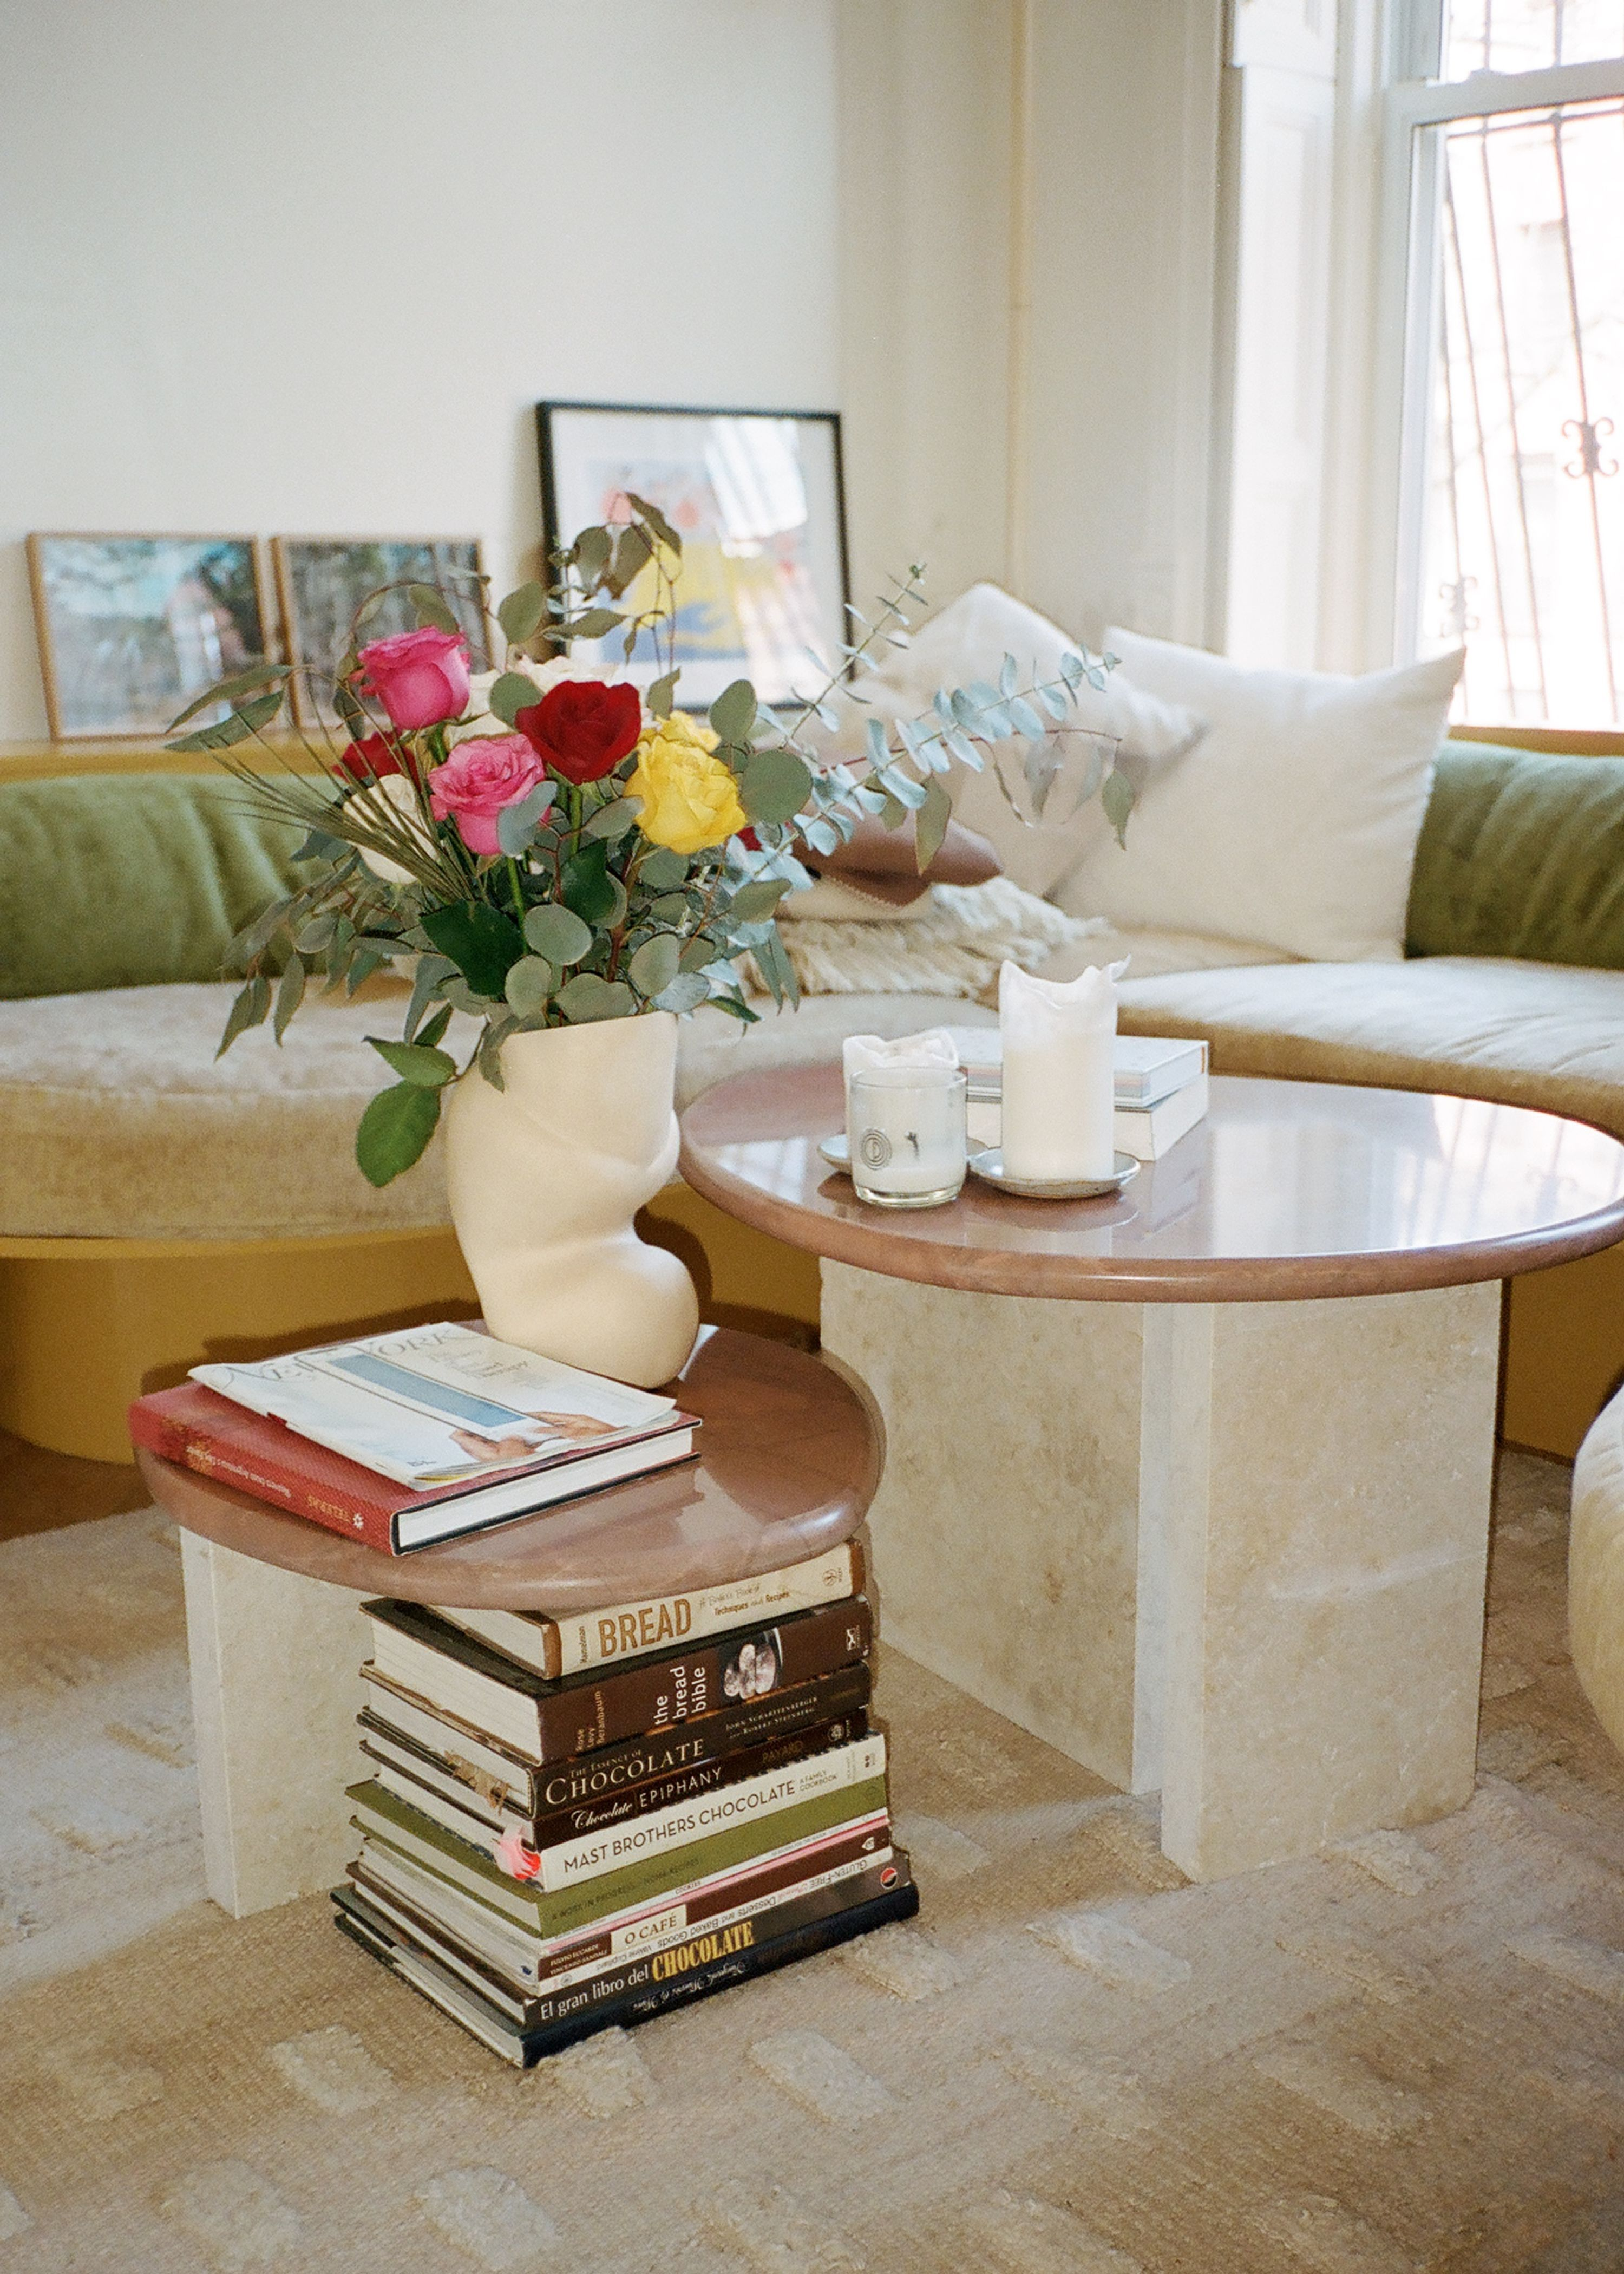 marble and wood coffee table. colorful flowers in an abstract vase